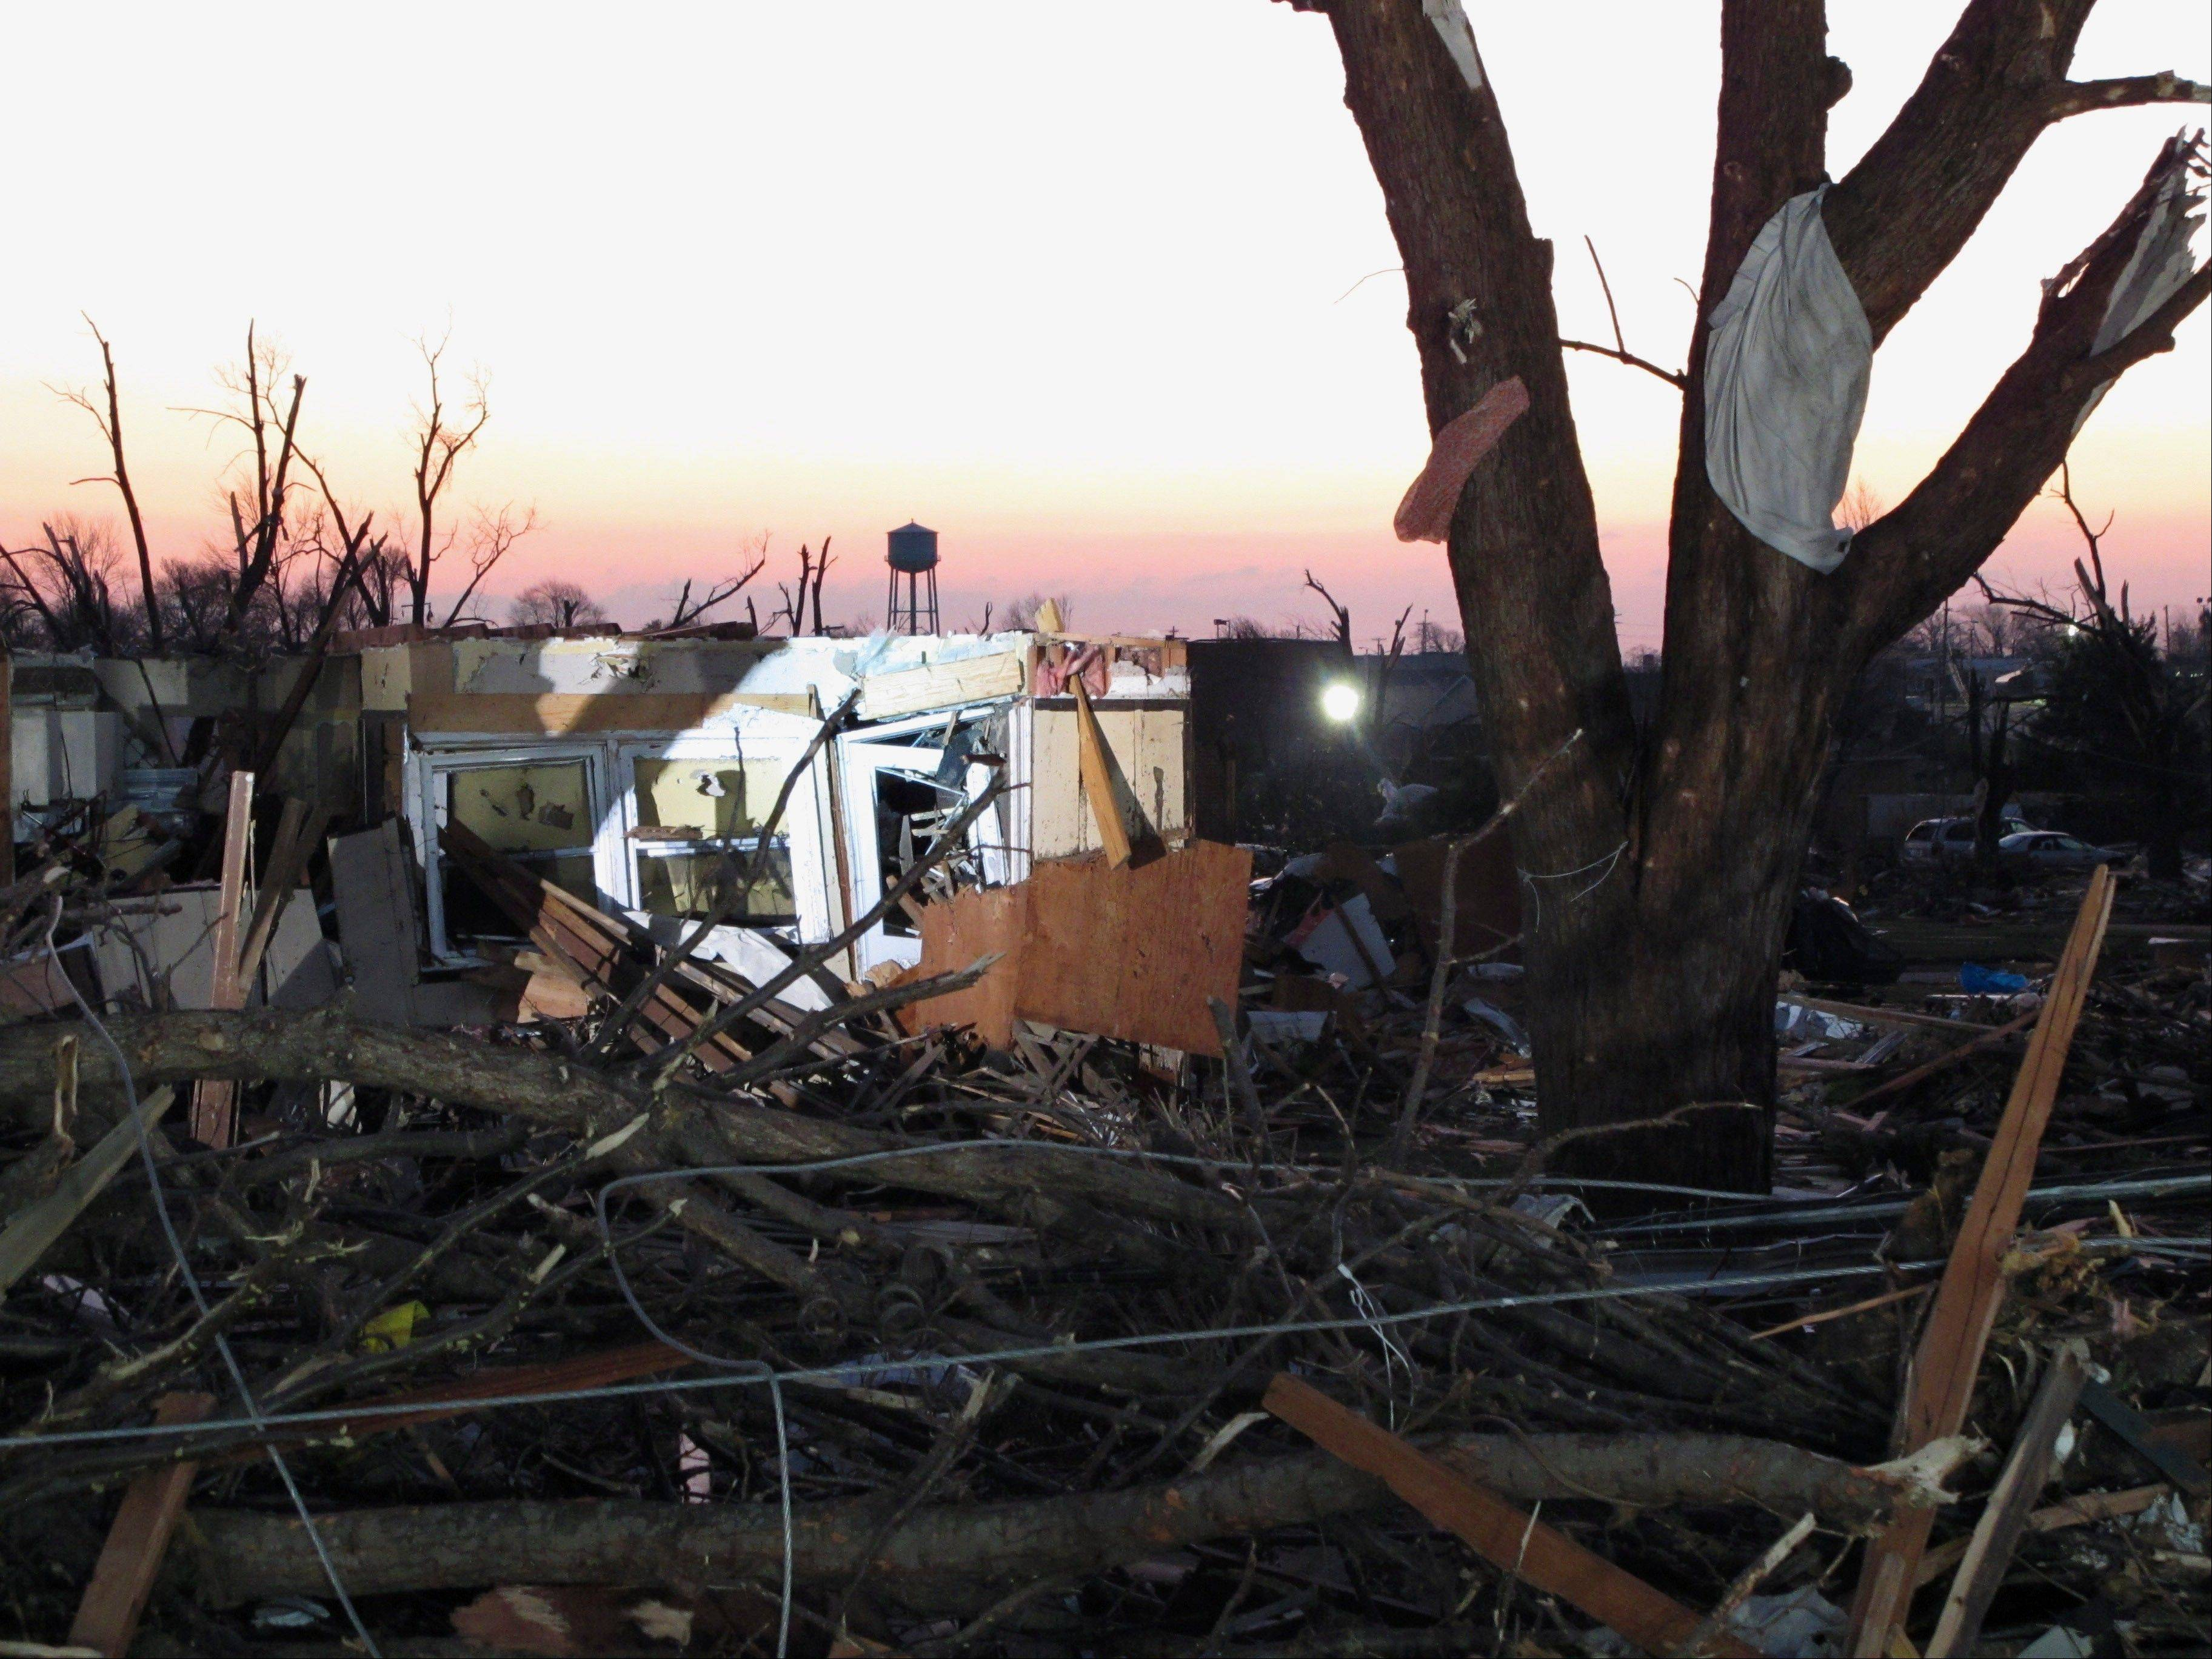 The rubble of a home in Washington, Ill., is seen early Monday, Nov. 18, 2013, after a tornado leveled hundreds of homes in the city the day before.